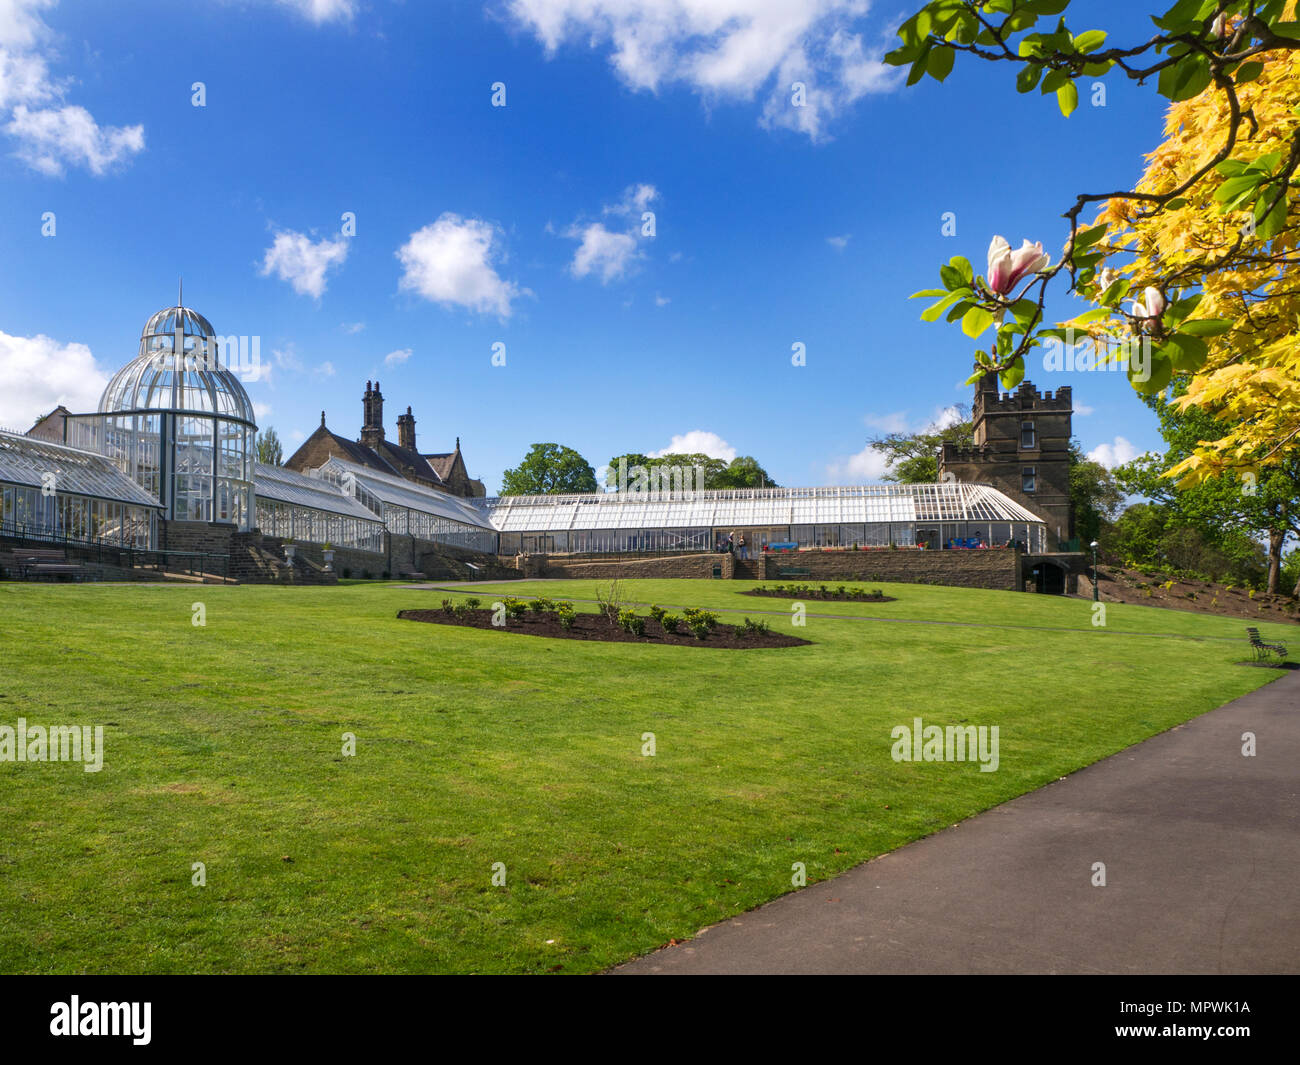 Upper Terrace Glasshouses at Cliffe Castle Keighley West Yorkshire England - Stock Image